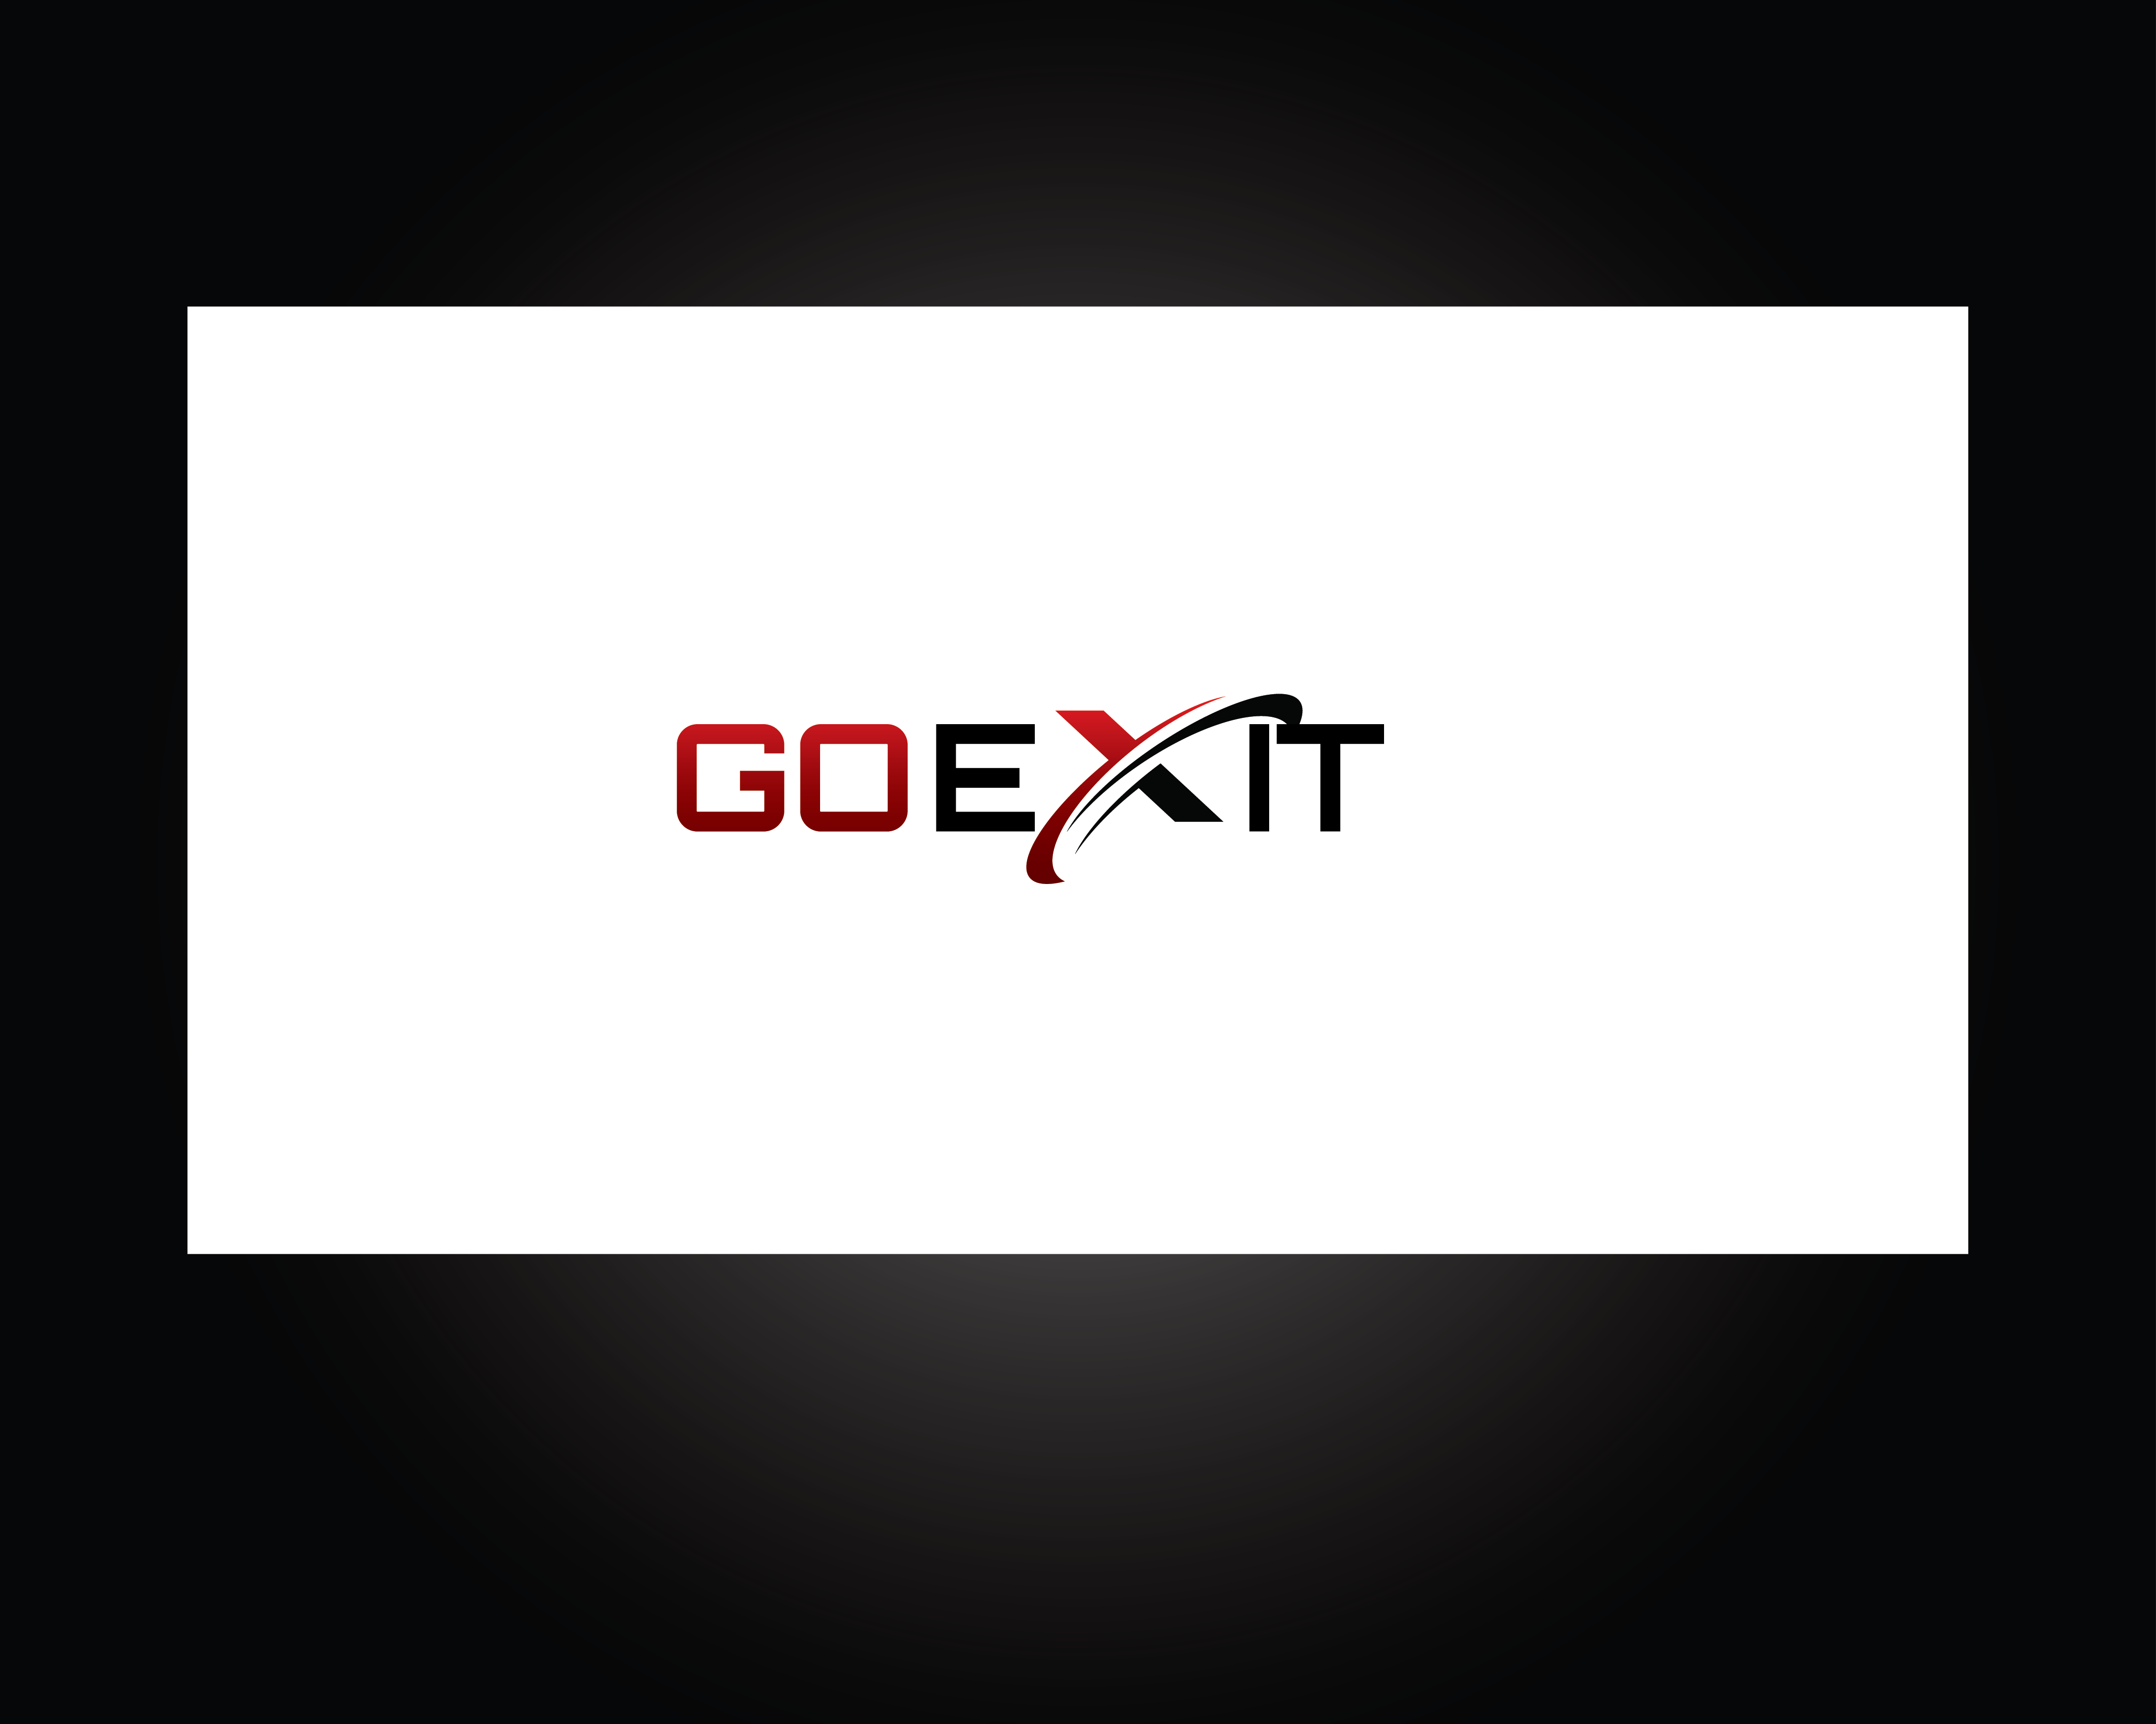 Logo Design by roc - Entry No. 15 in the Logo Design Contest GoExit Logo Design.